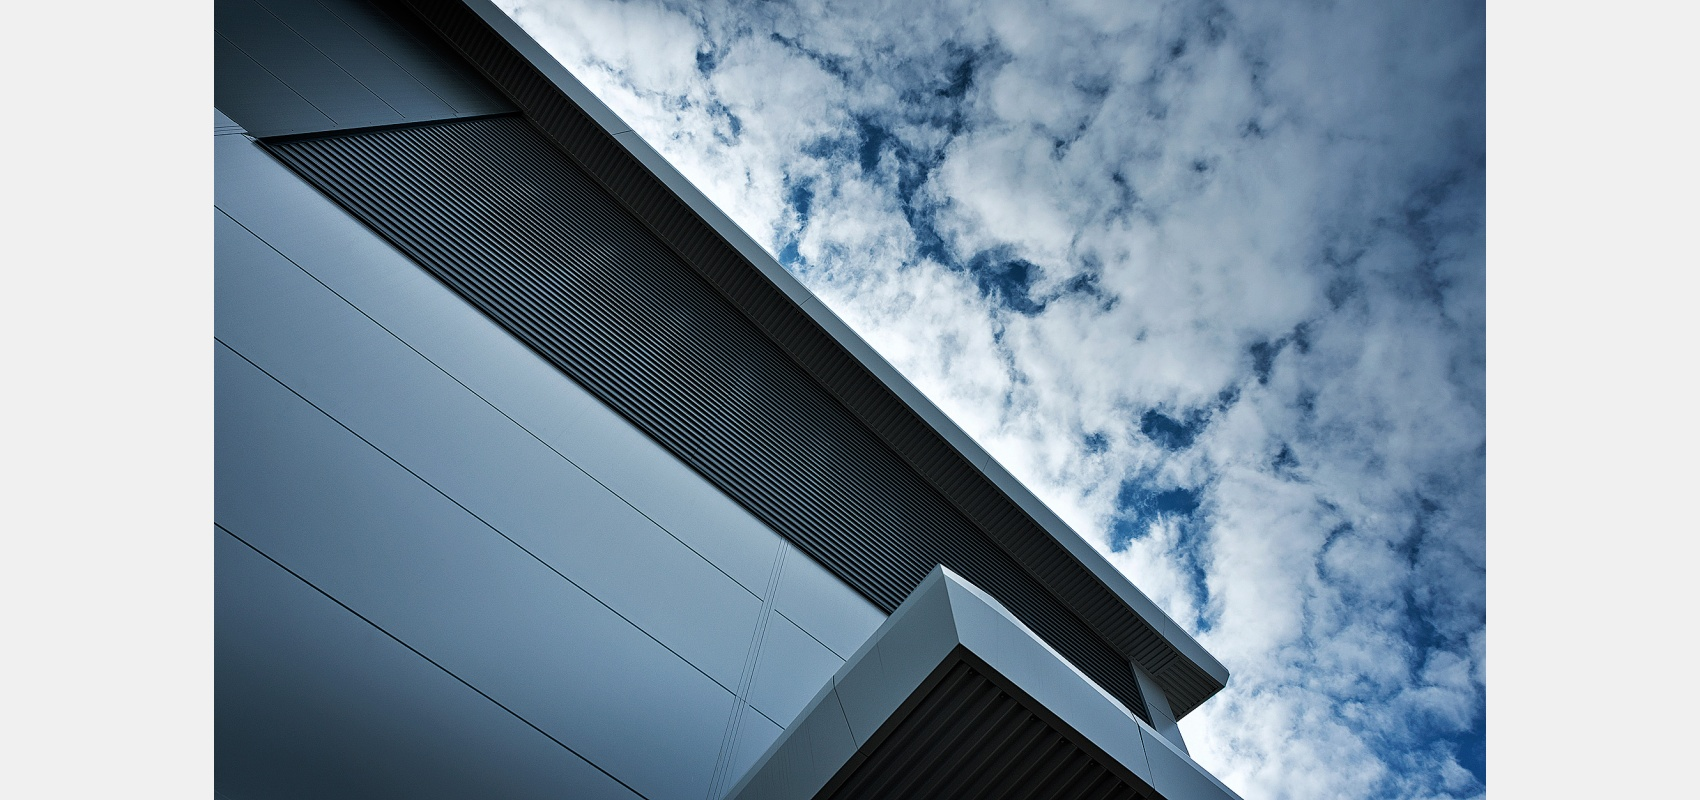 Construction Photography/ Exterior finish/ new lab against mottled sky.